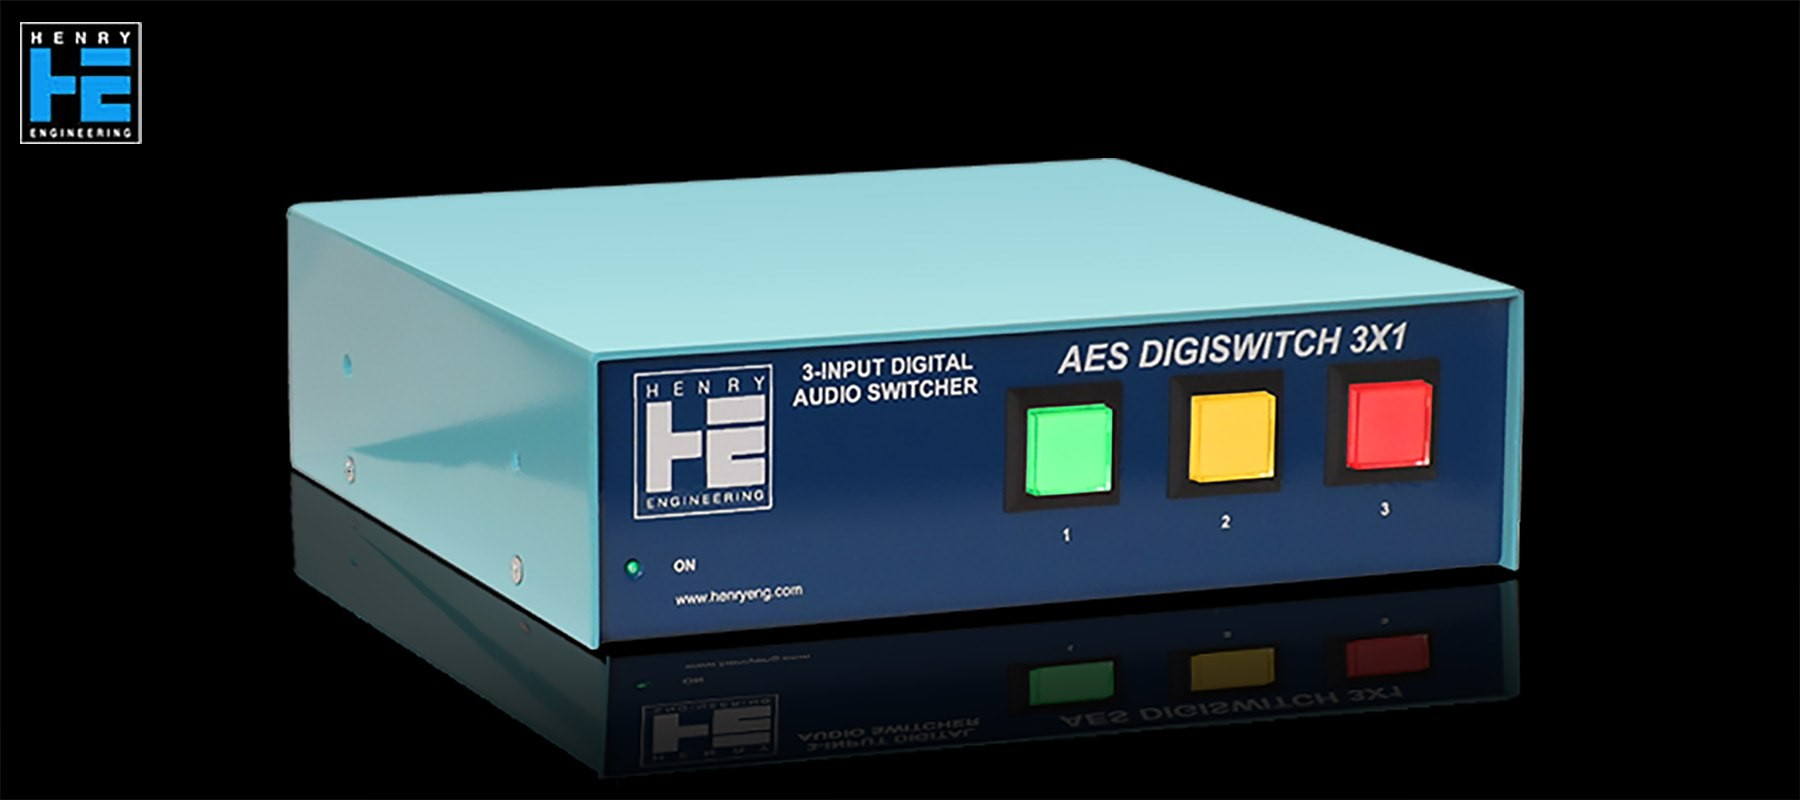 Henry Engineering AES DigiSwitch 3X1